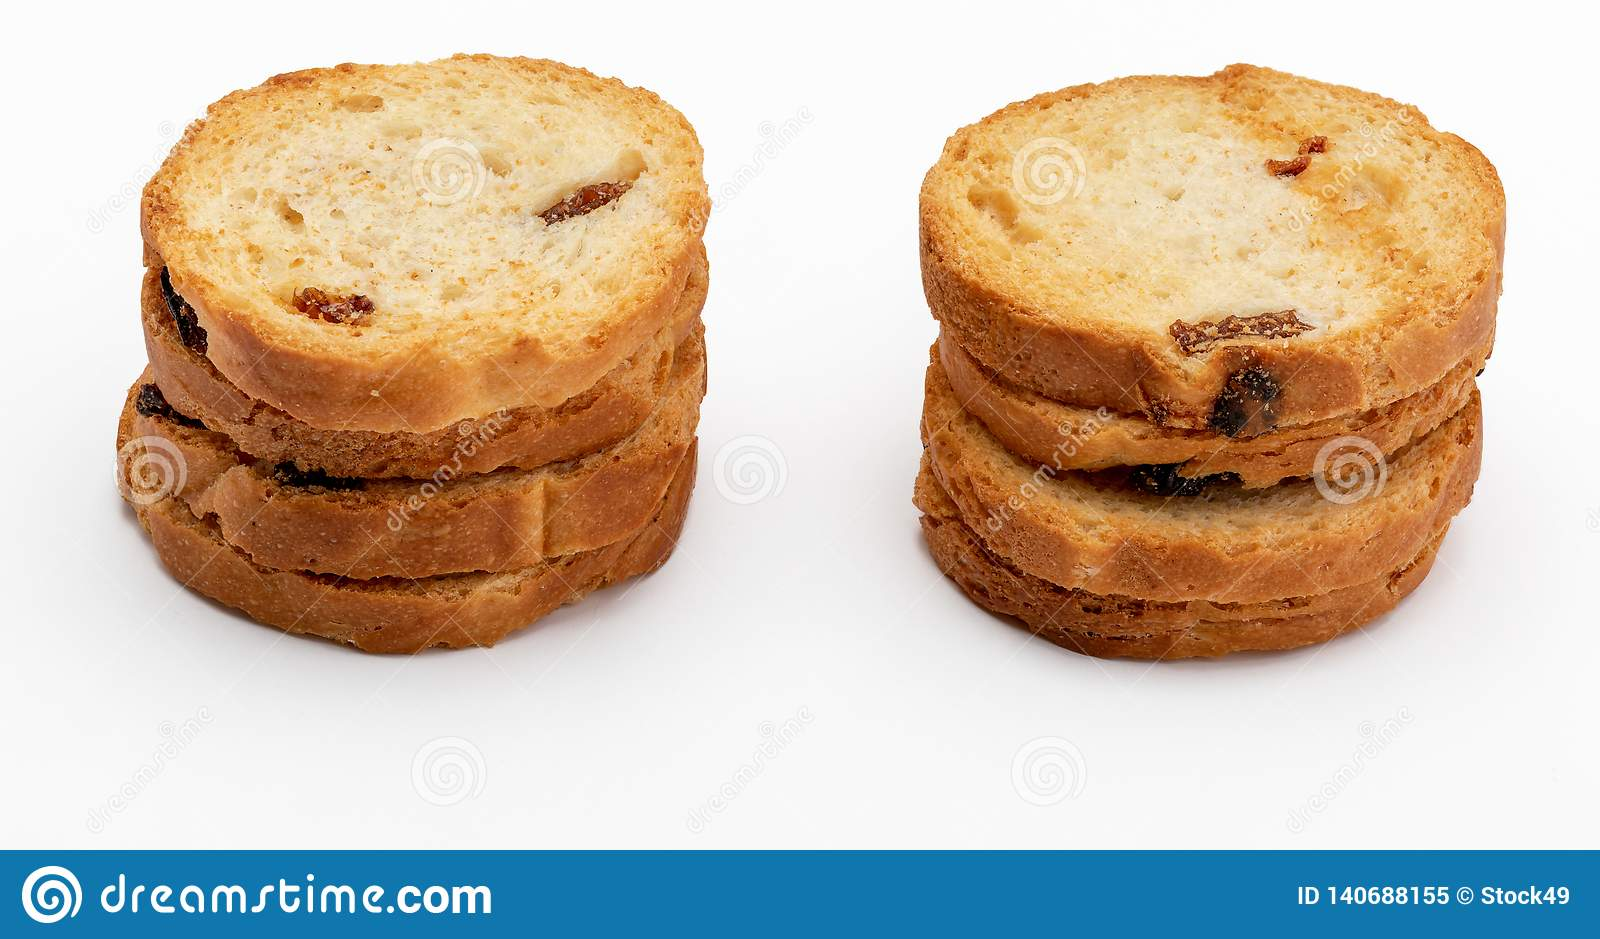 Mini round toasts of bread with raisins. Several units.